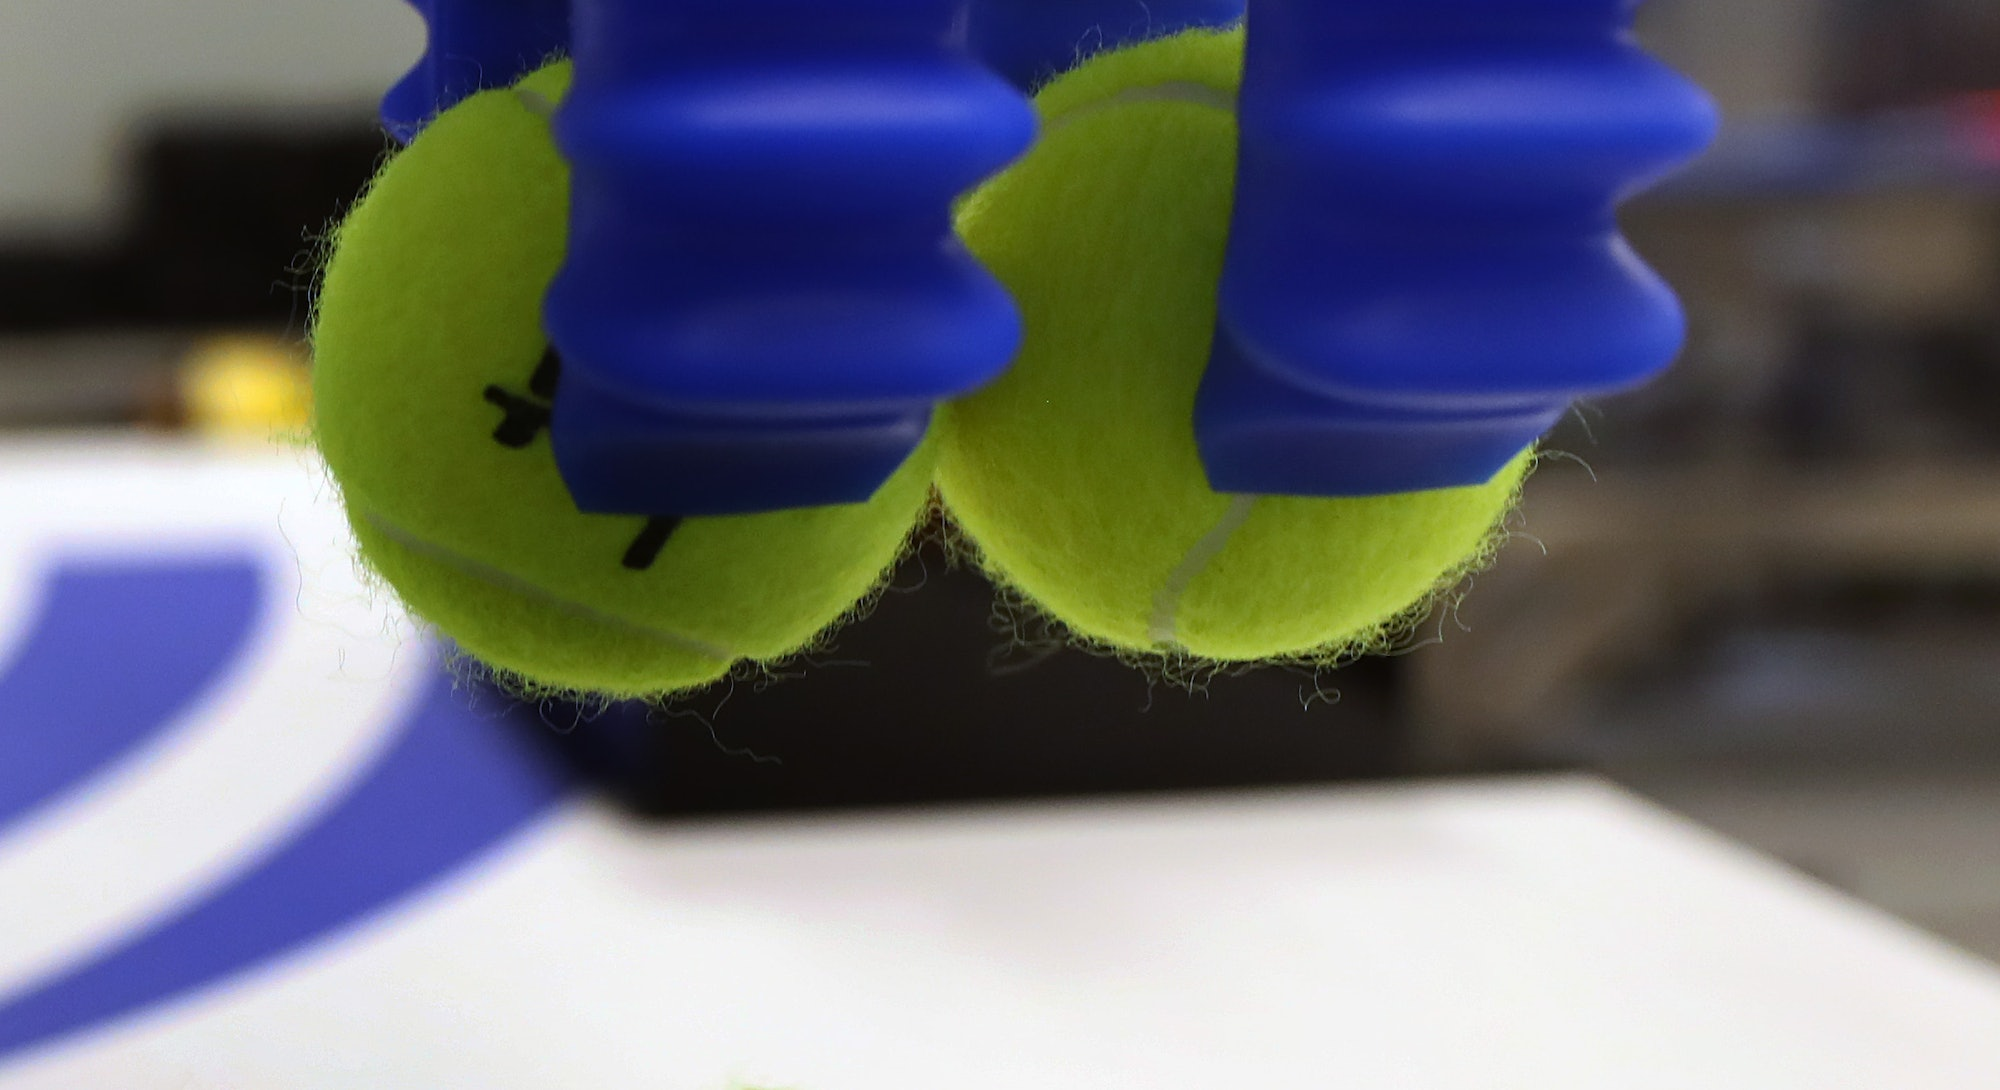 BEDFORD, MA - MAY 20: A soft robotics device works with tennis balls in Bedford, MA on May 20, 2019....